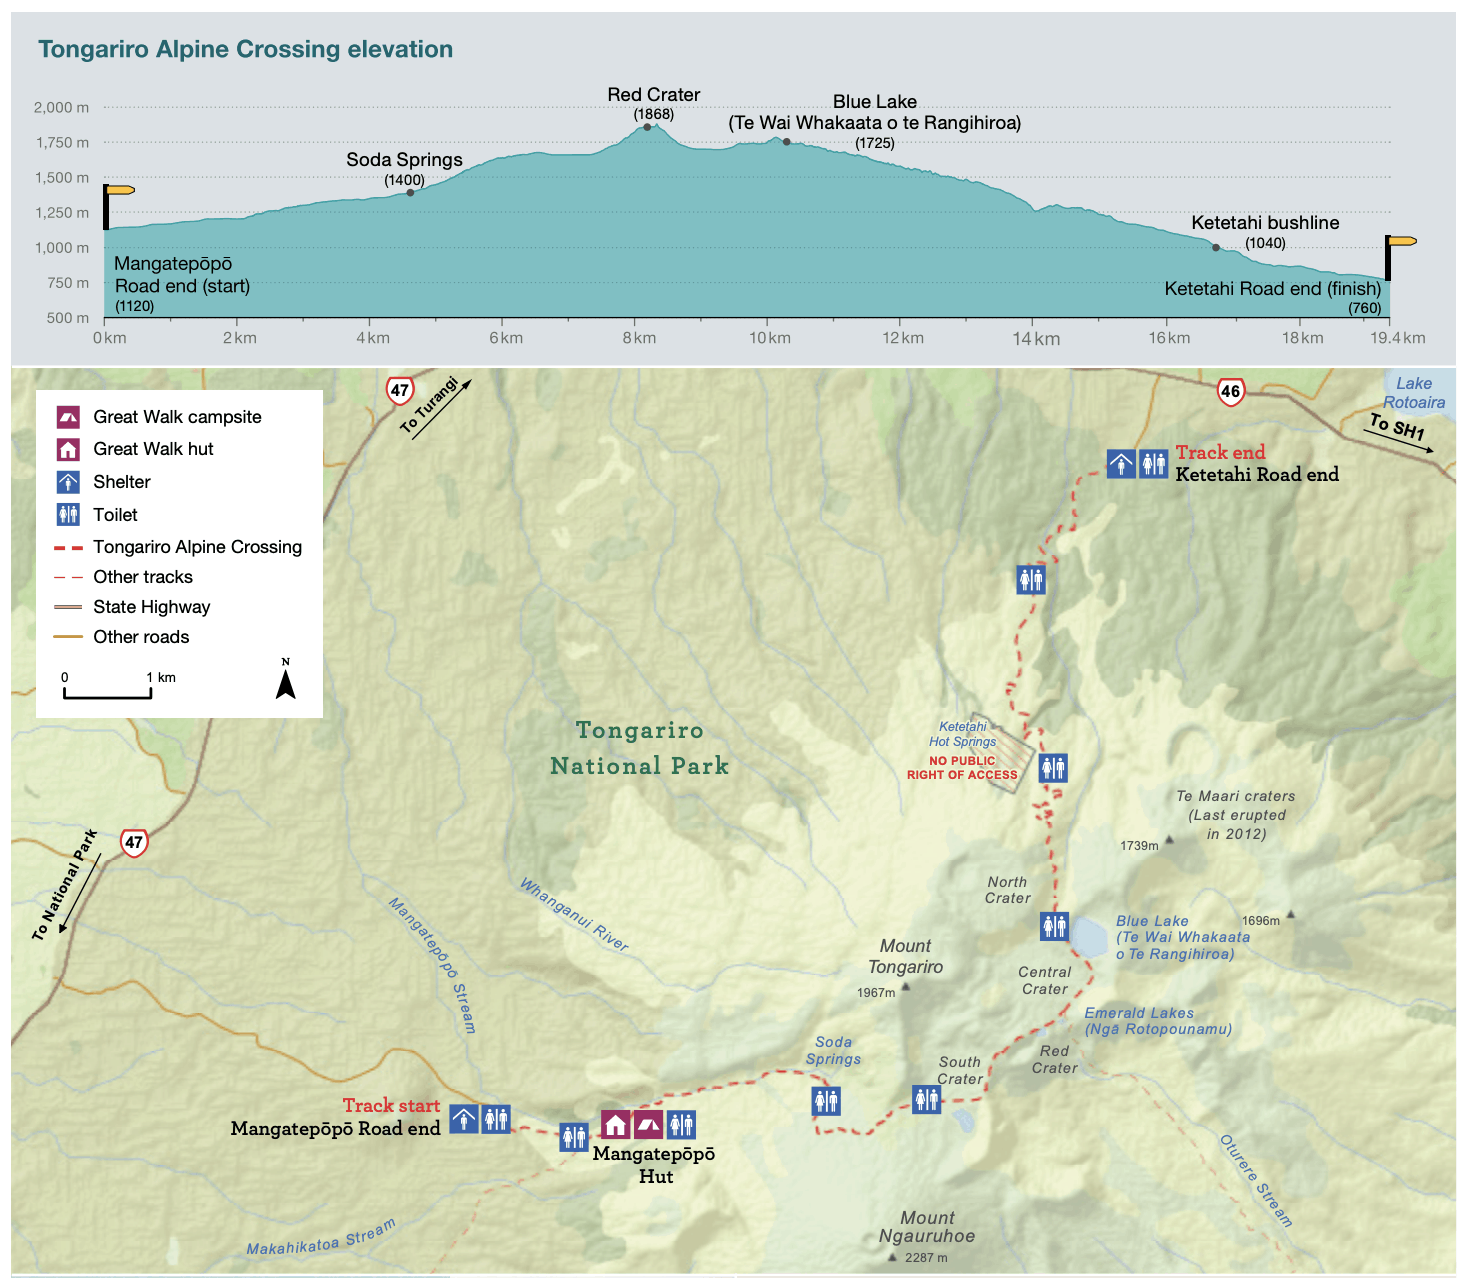 Tongariro Alpine Crossing Map and Elevation